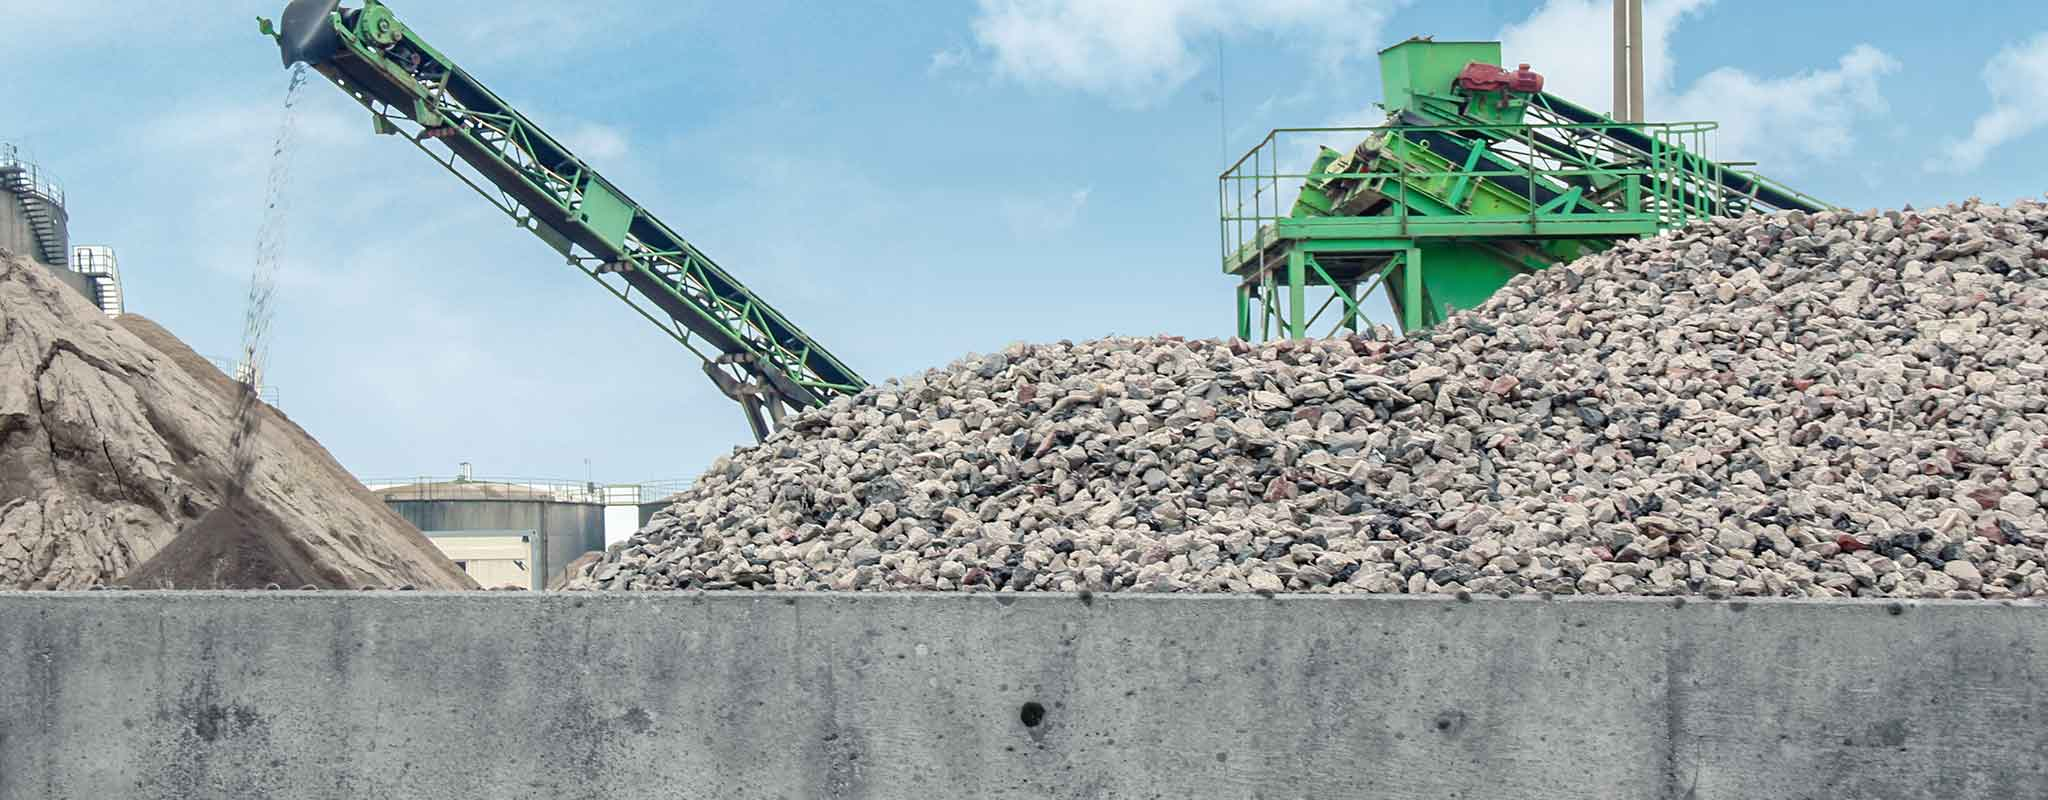 Recycled aggregates: production plant overview